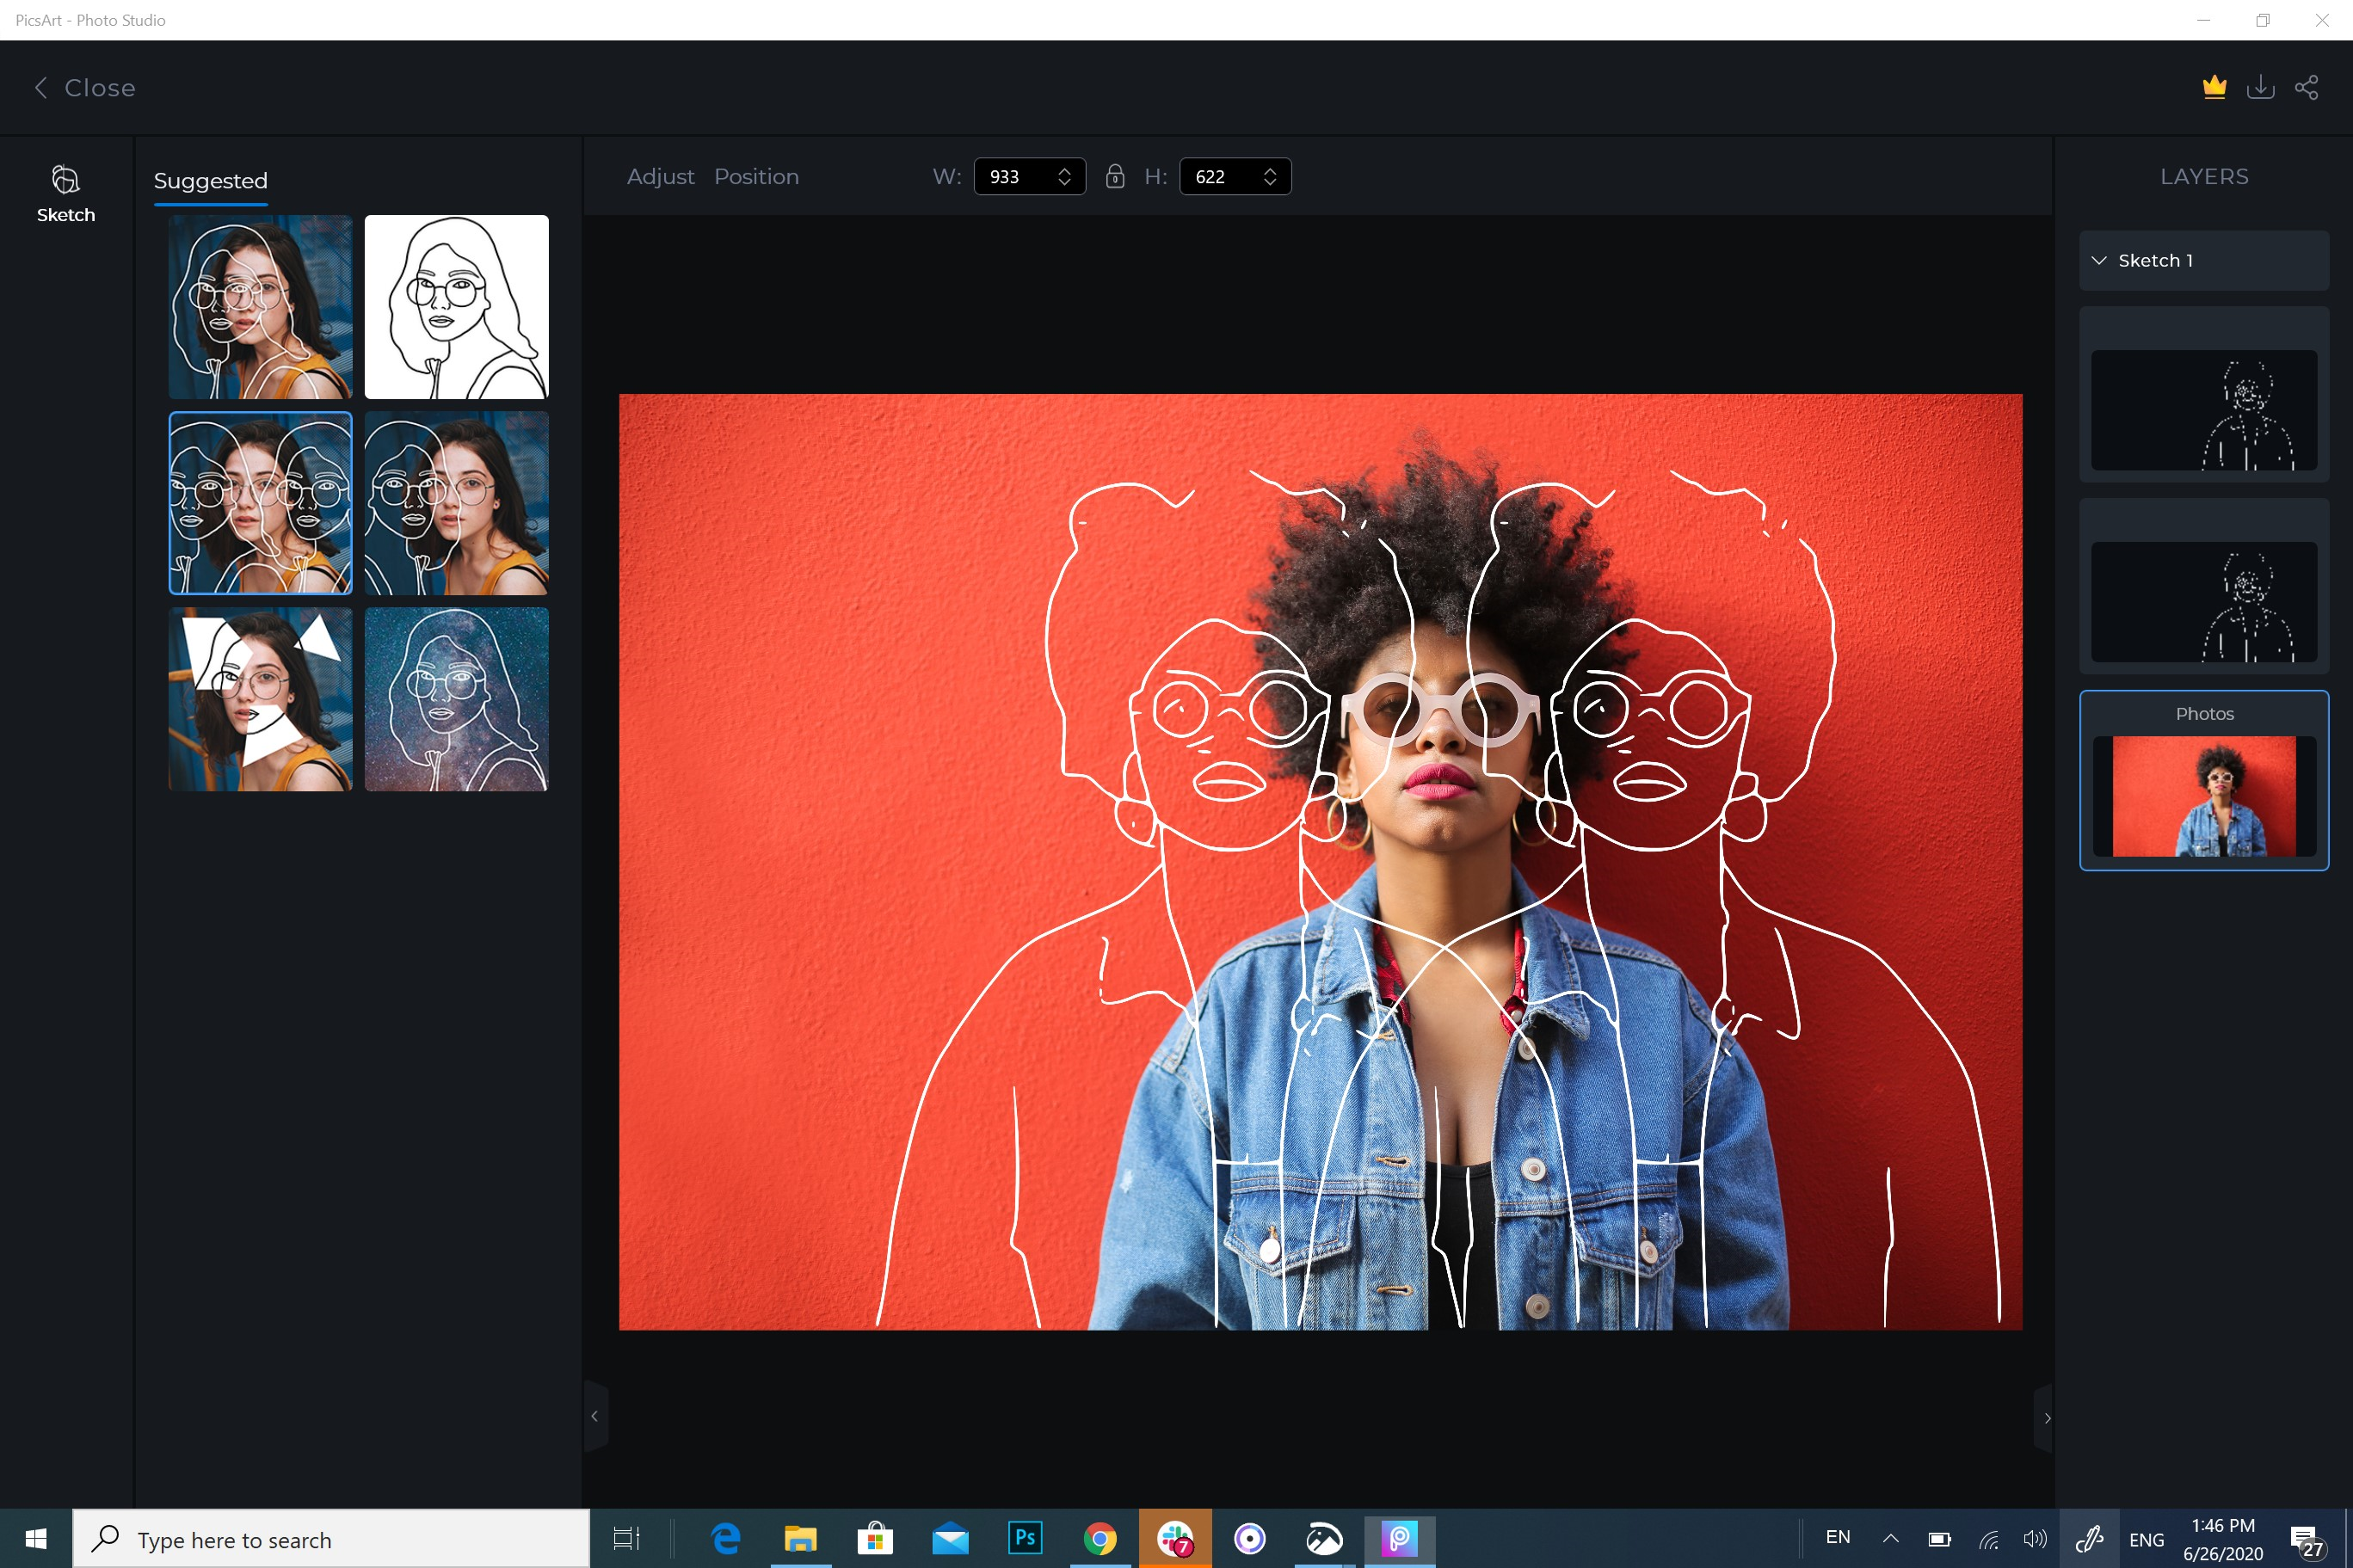 Windows PicsArt interface